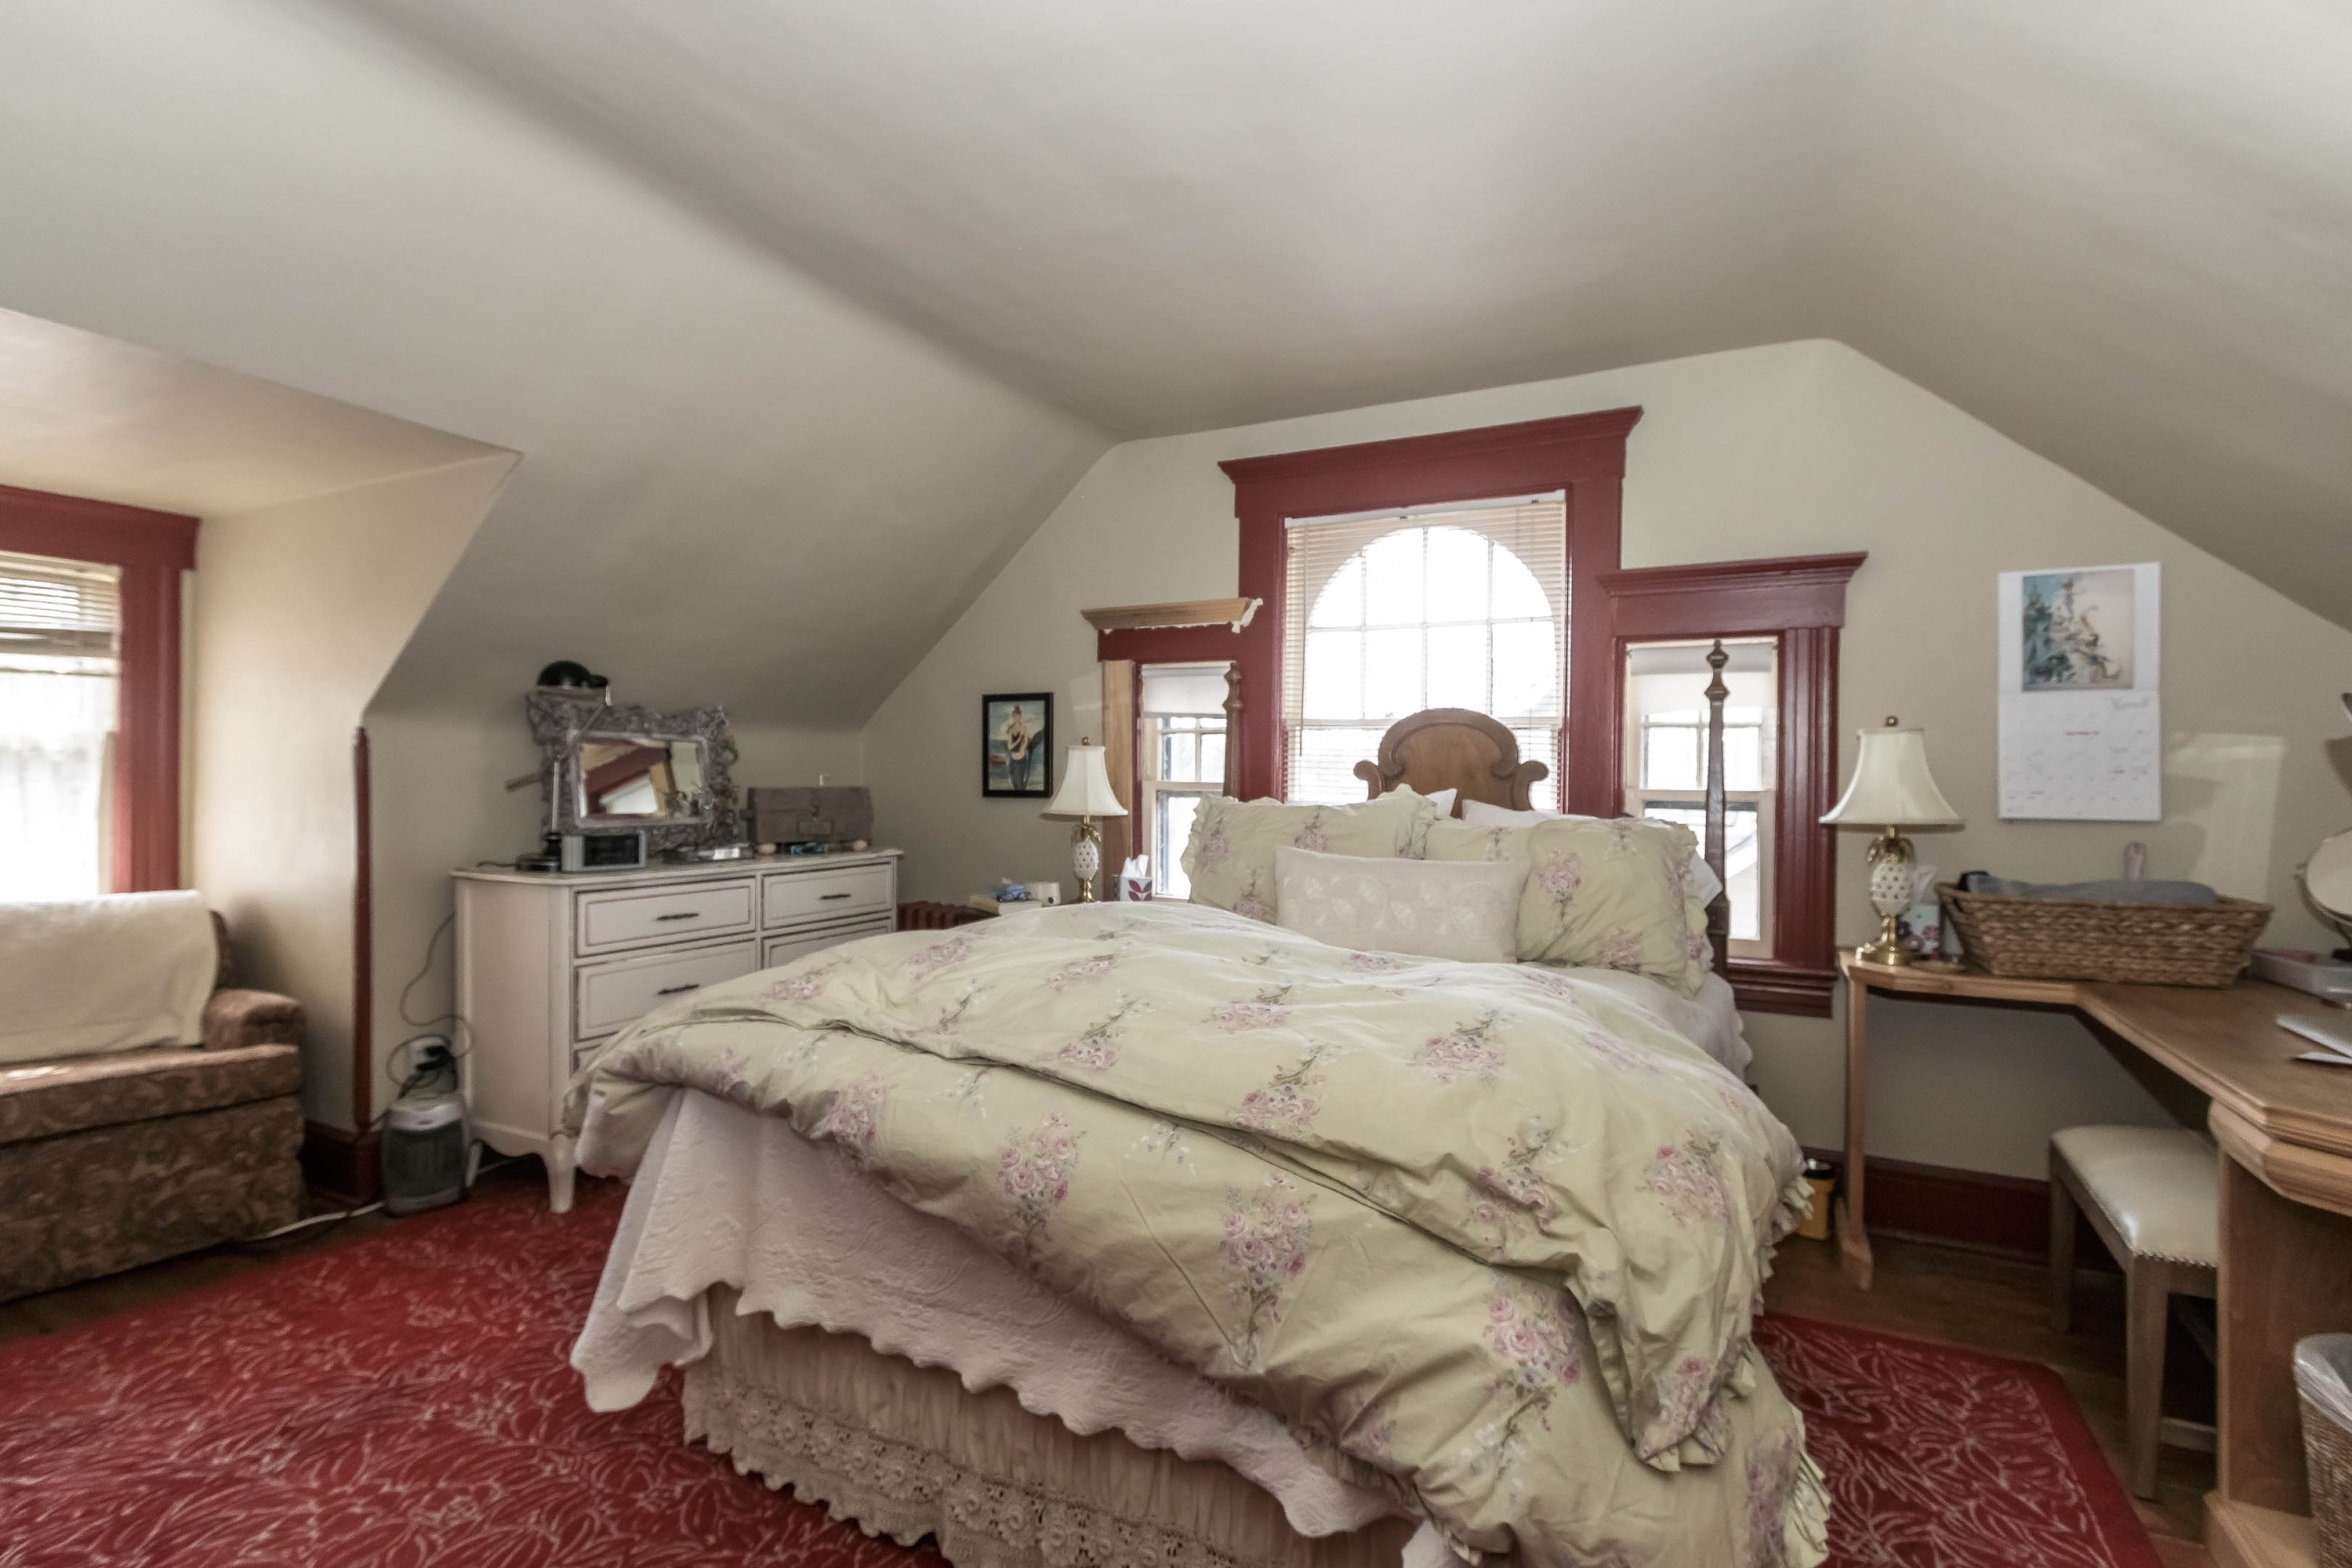 Before – Original Master Bedroom